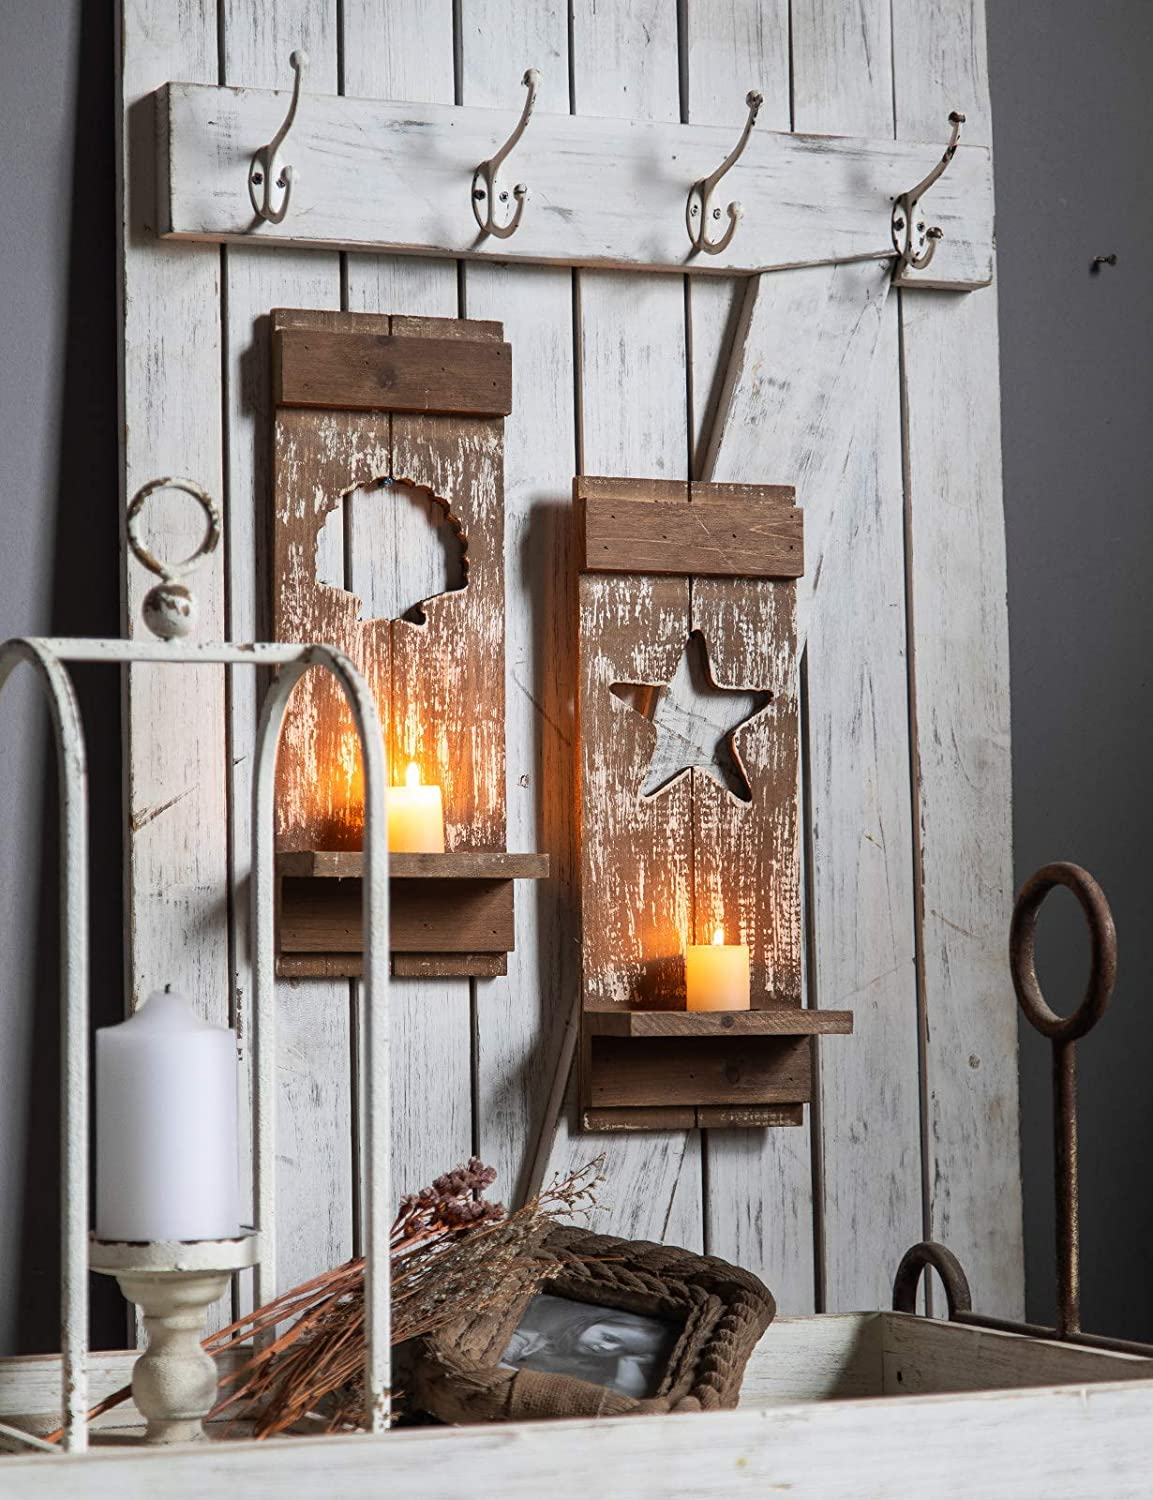 5.9 x 3.1 x 15.7, Shell Vintage Candle Sconce Wall Decor for Living Room Antique Brown Wooden Hanging Wall Mounted Candle Holder Rustic Wall Sconce Candle Holder for Pillar Candle Dining Room